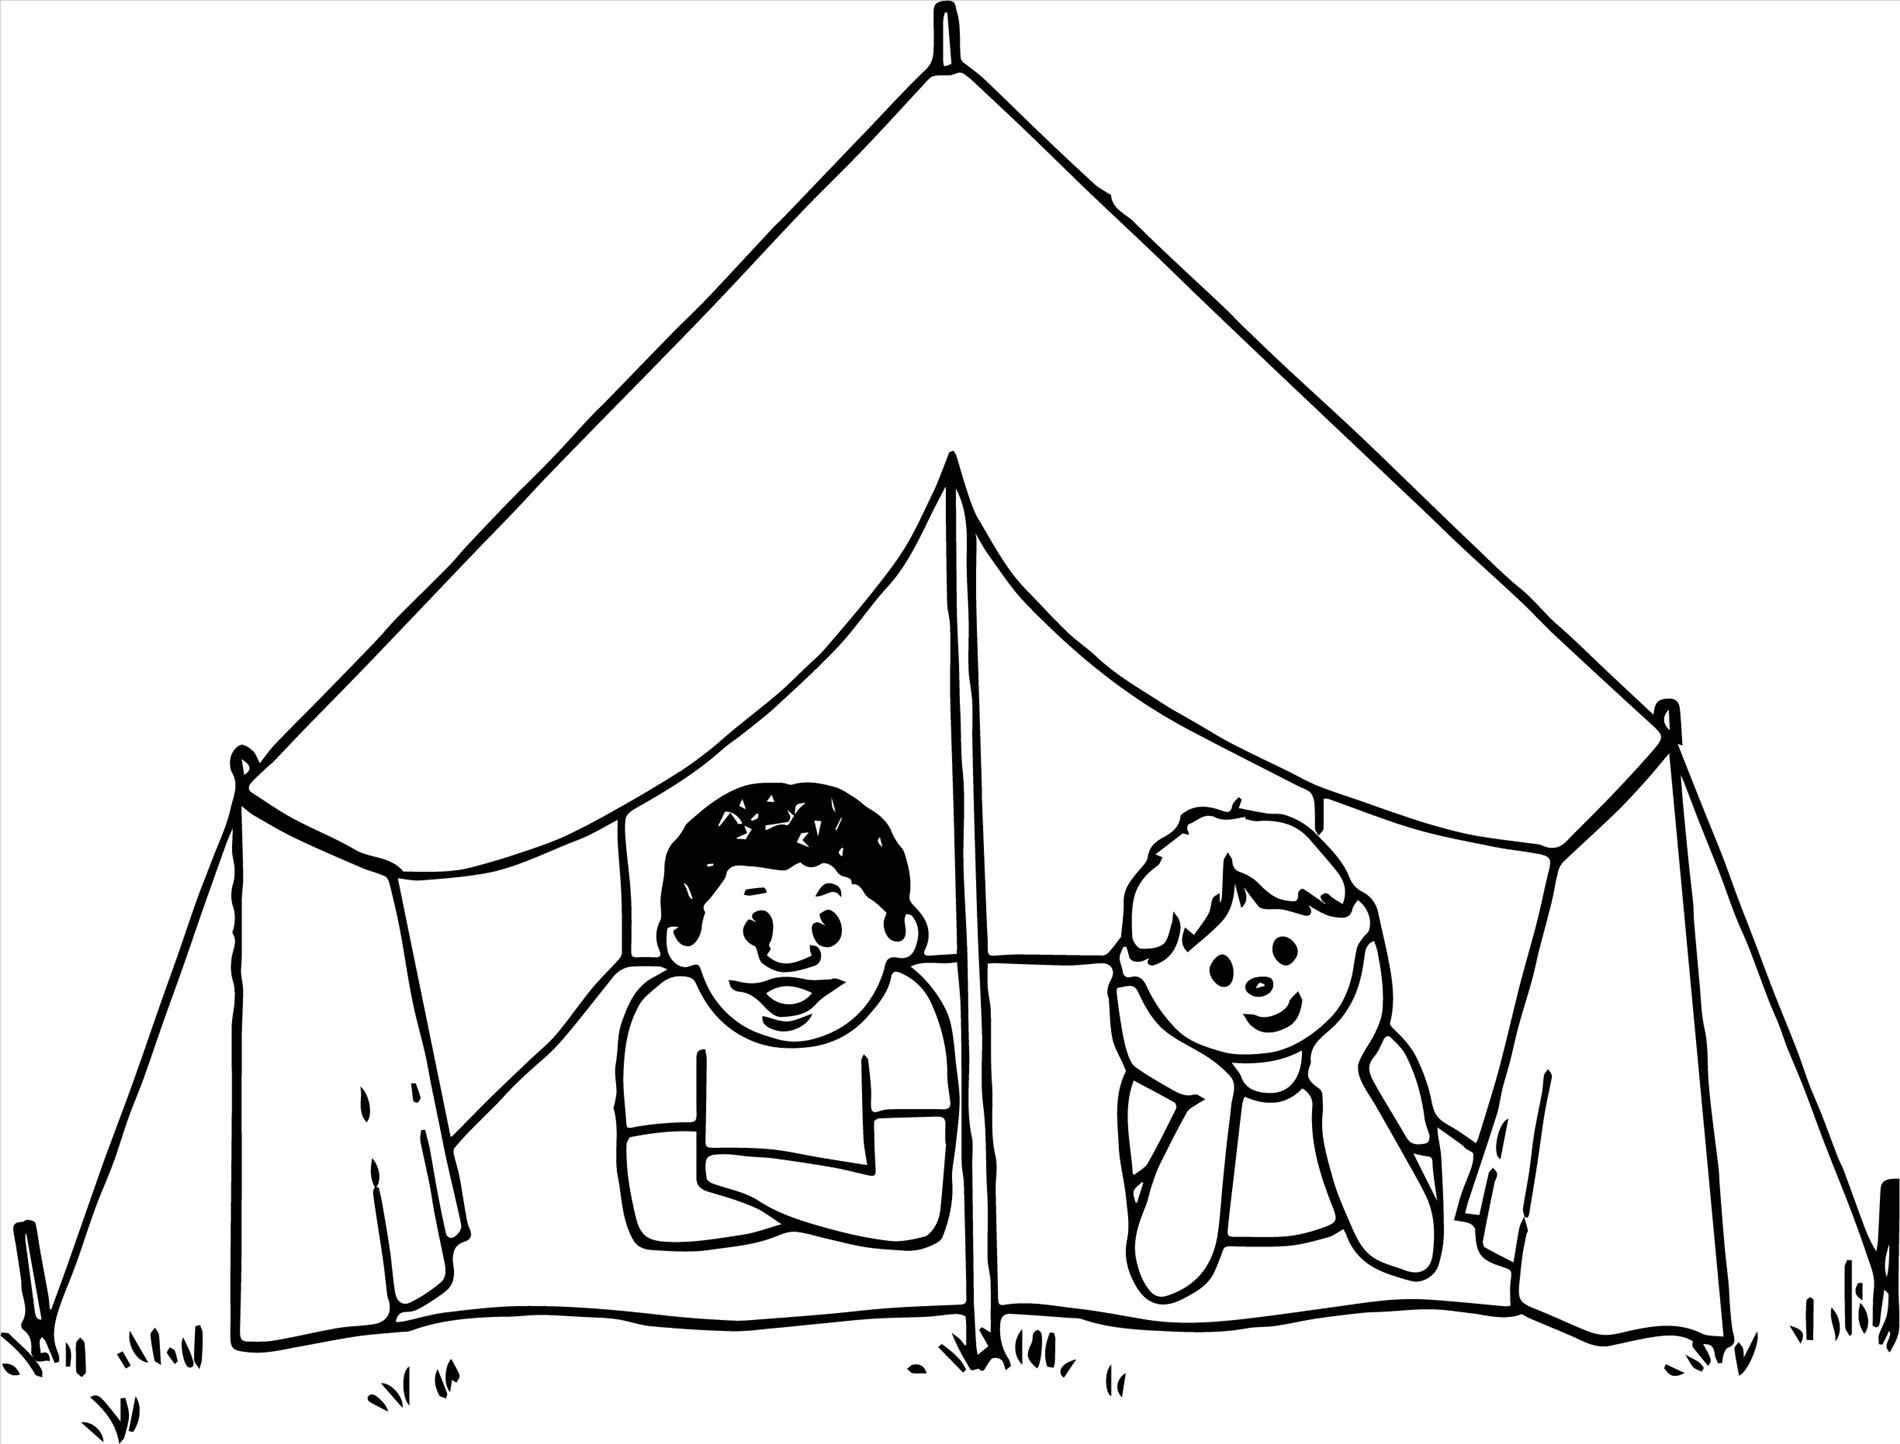 Tent Drawing at GetDrawings.com | Free for personal use ...